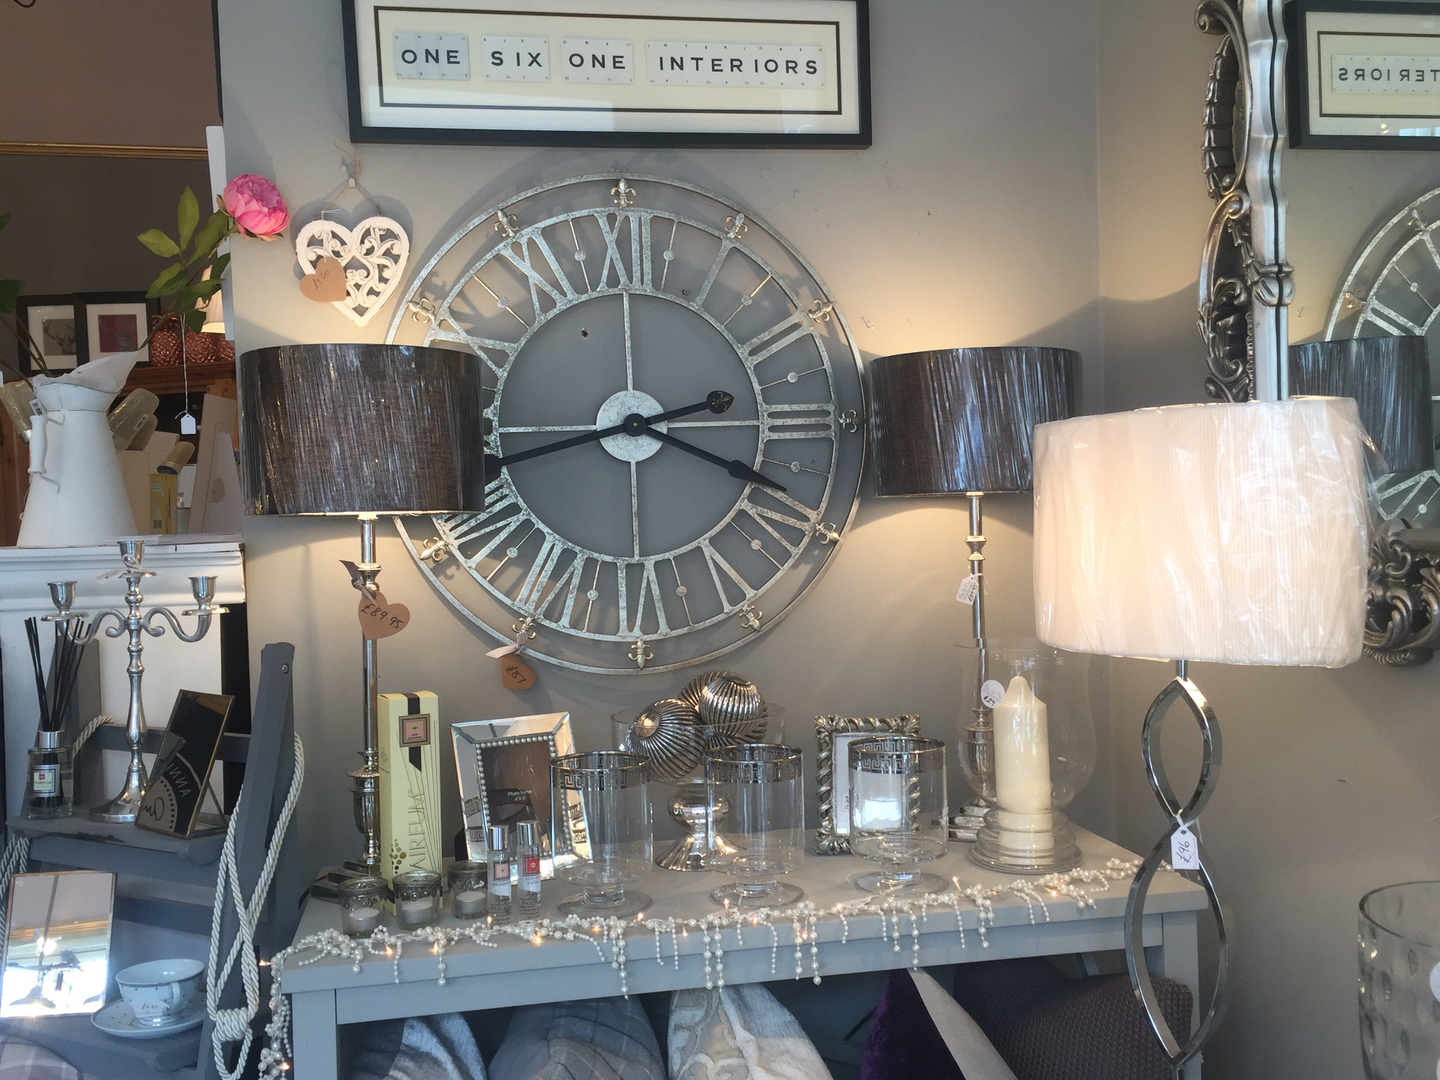 One Six One Interiors on Park View in Whitley Bay